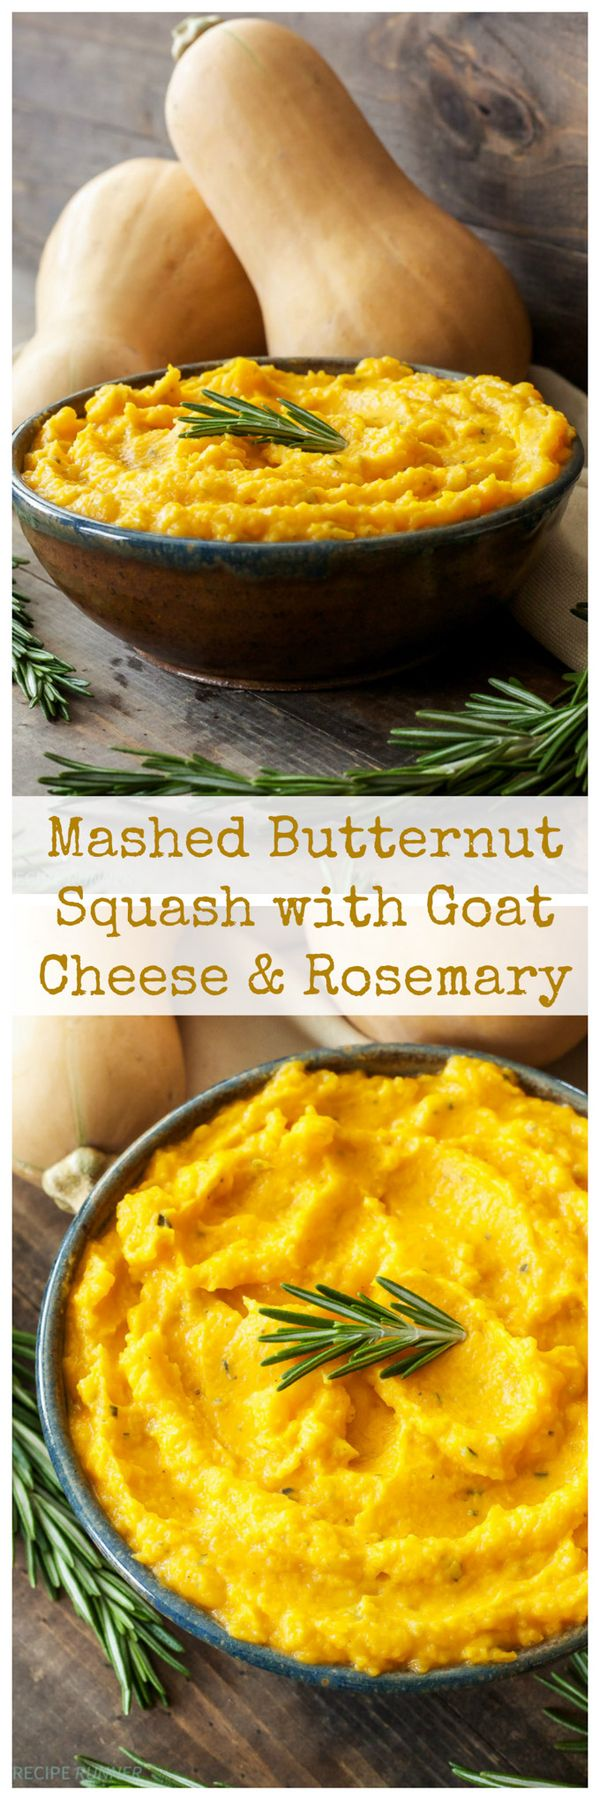 Mashed Butternut Squash with Goat Cheese and Rosemary   Goat cheese & rosemary add richness & fresh piney flavor to mashed butternut squash. A great alternative to potatoes!